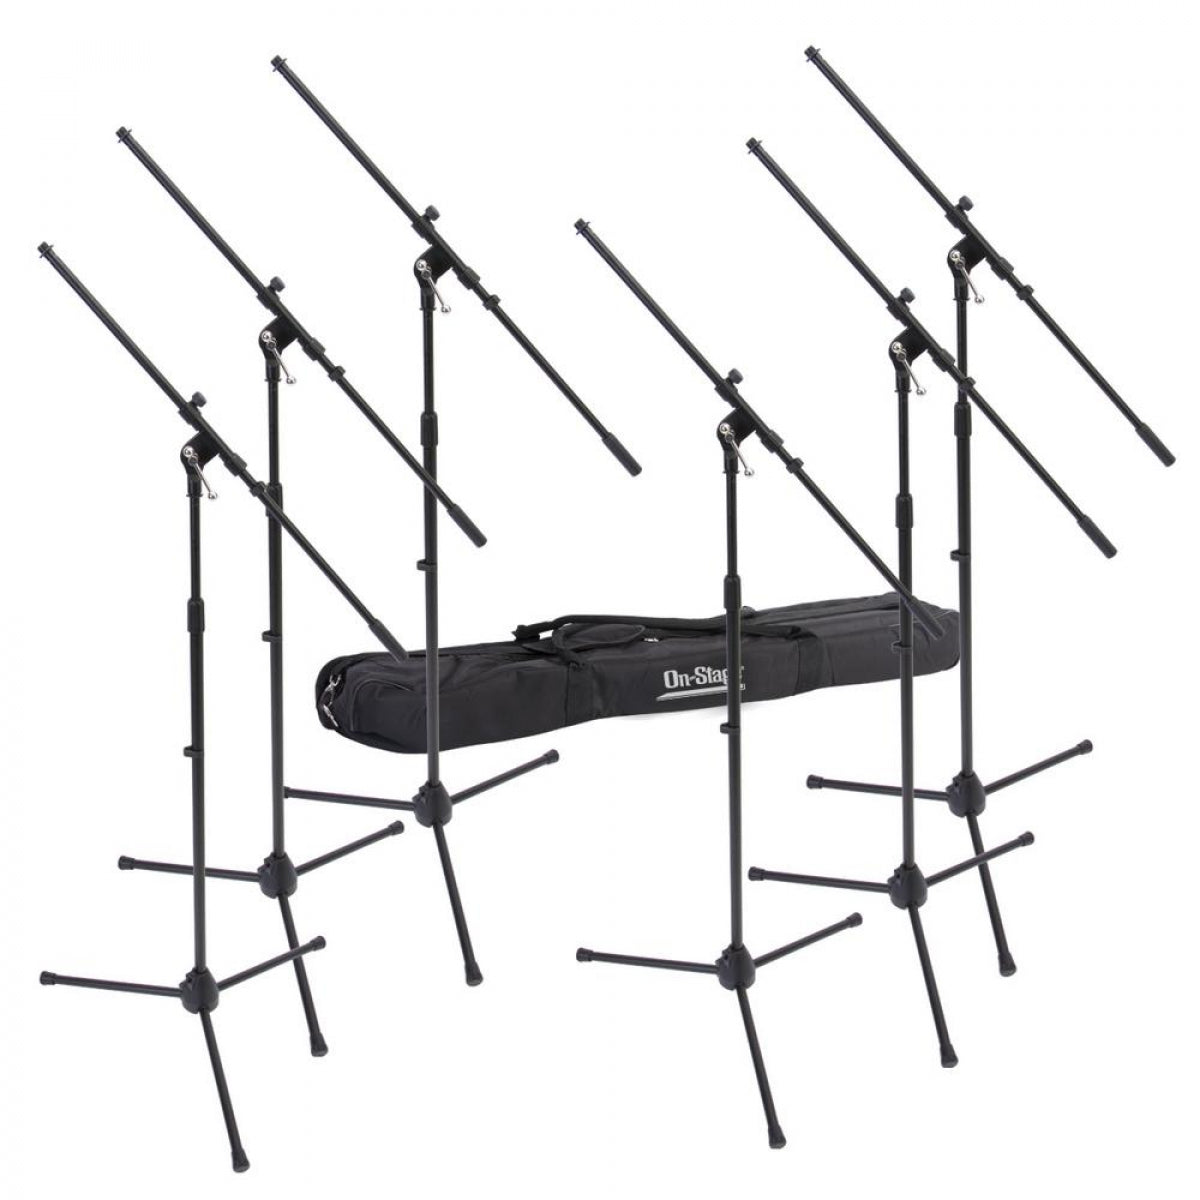 On-Stage 6 Euroboom Mic Stands w/ Bag